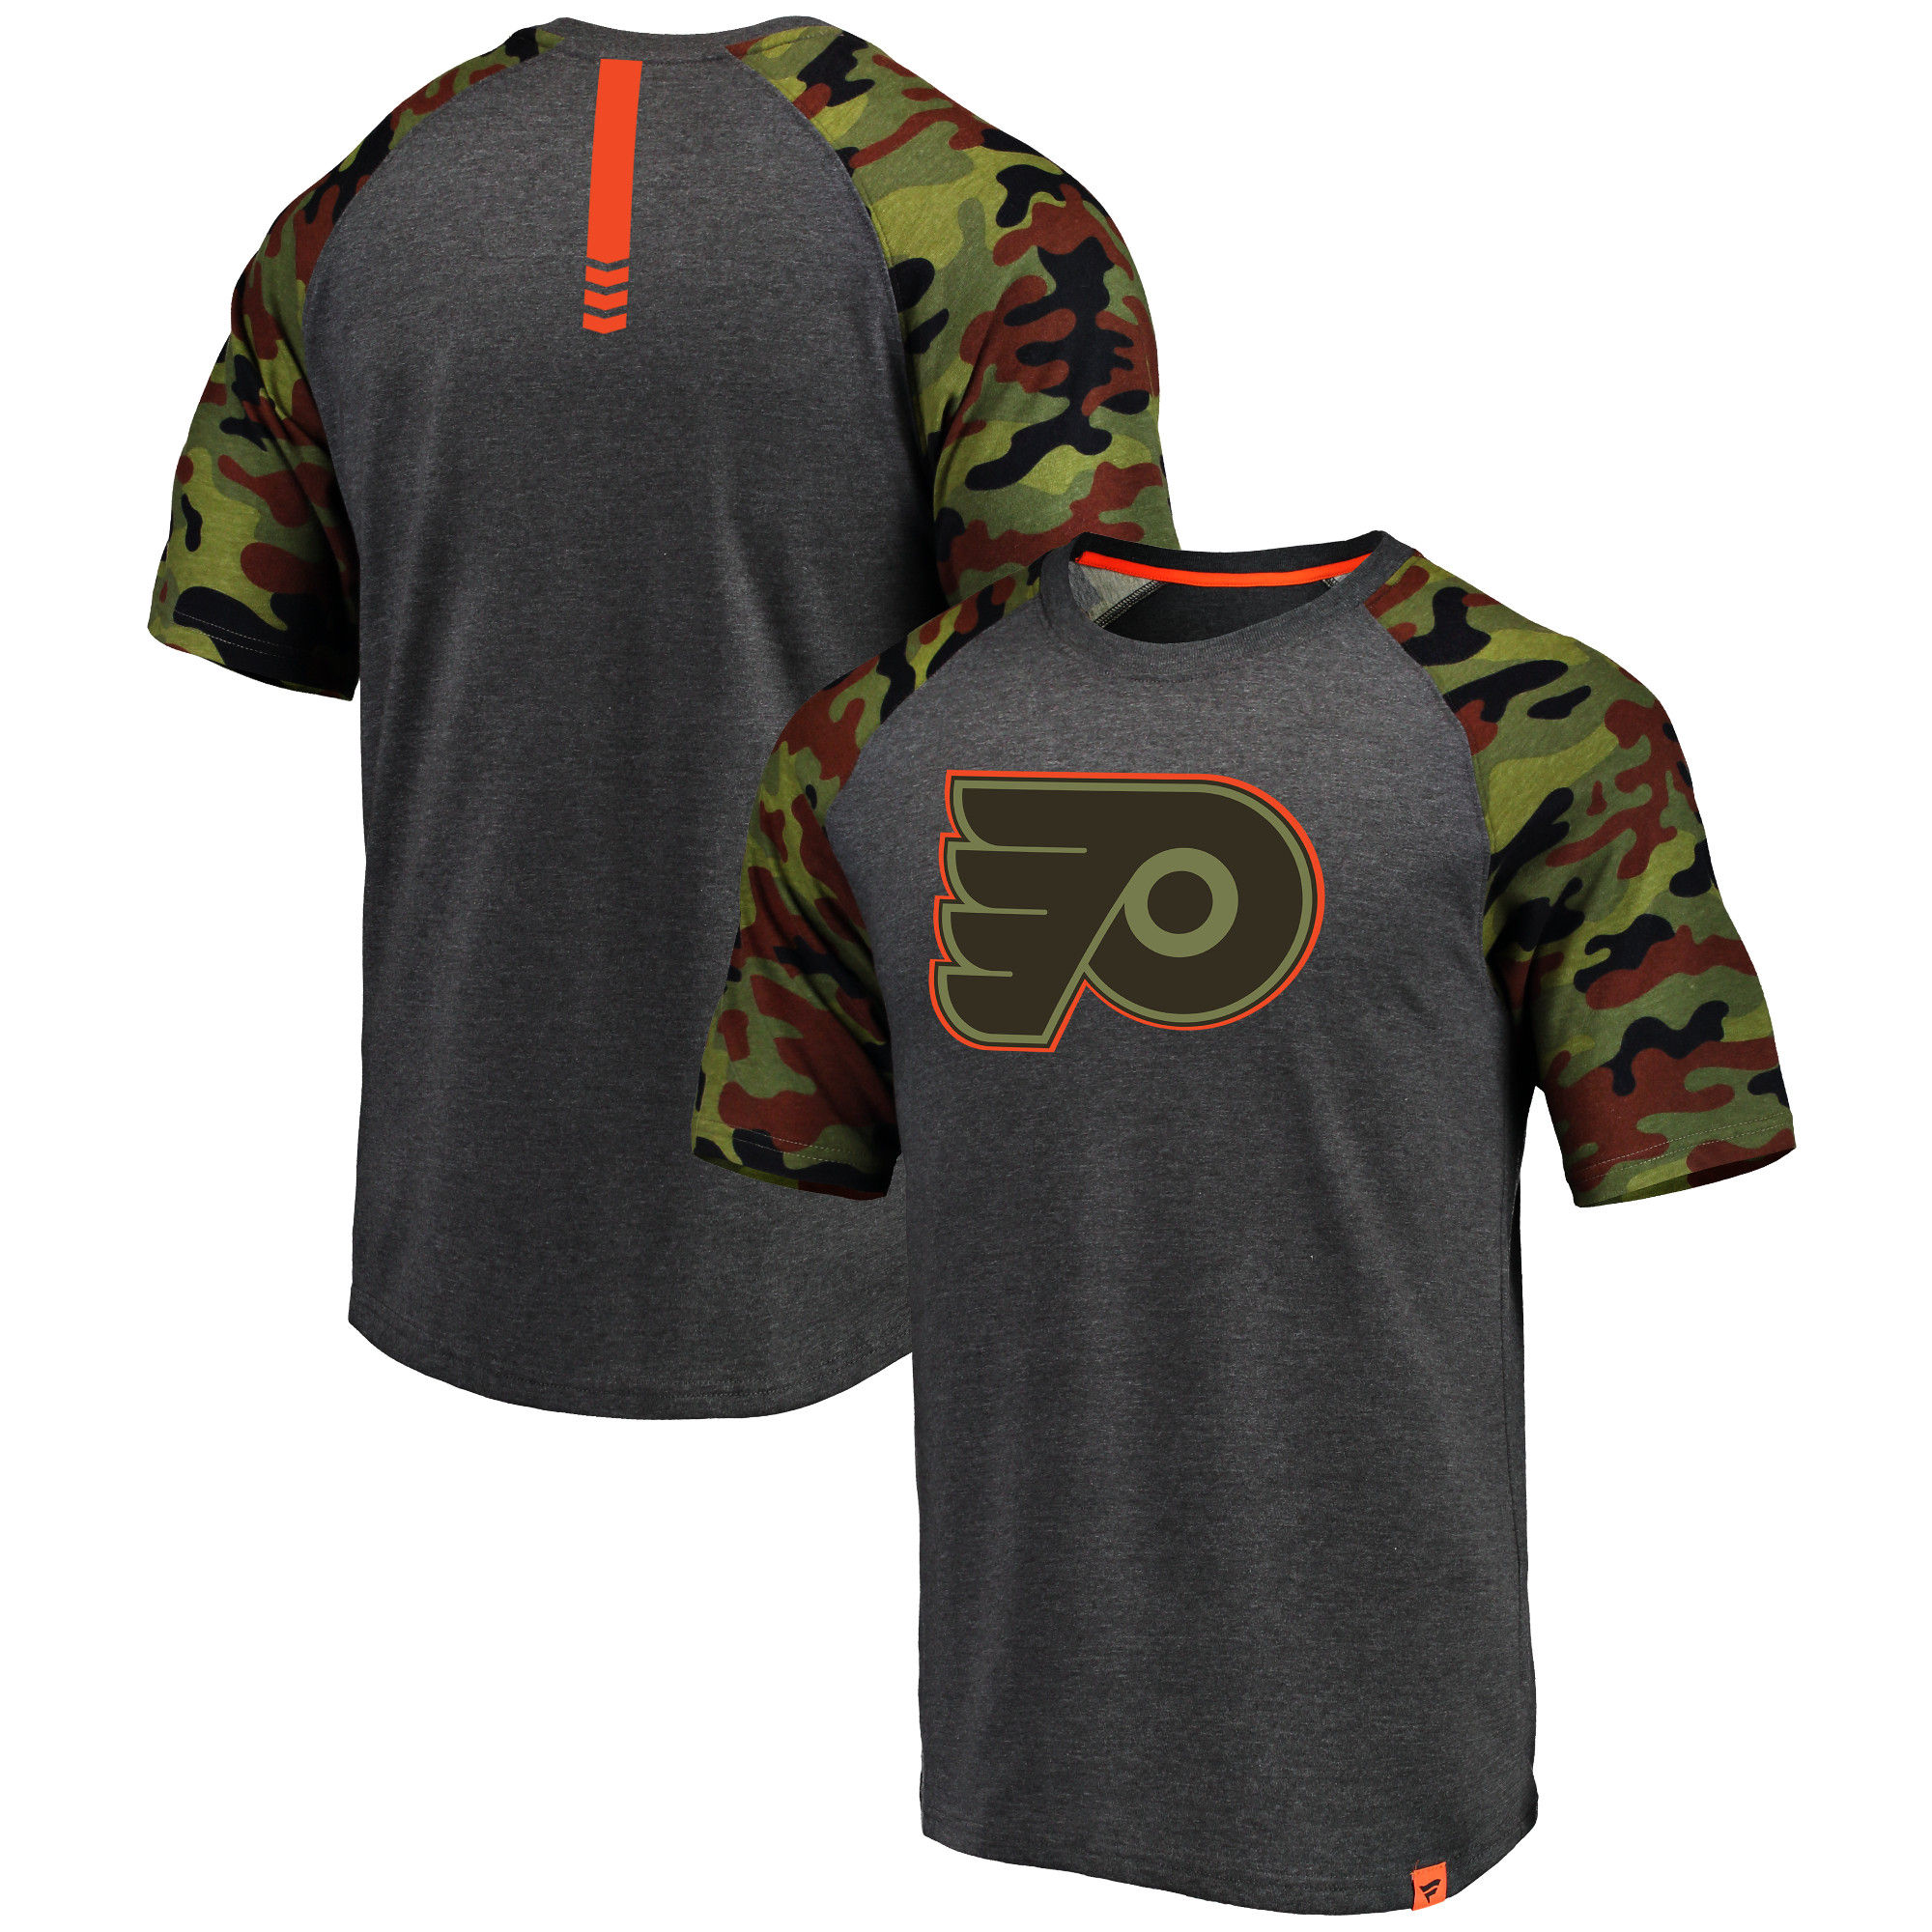 Philadelphia Flyers Fanatics Branded Heathered Gray/Camo Recon Camo Raglan T-Shirt